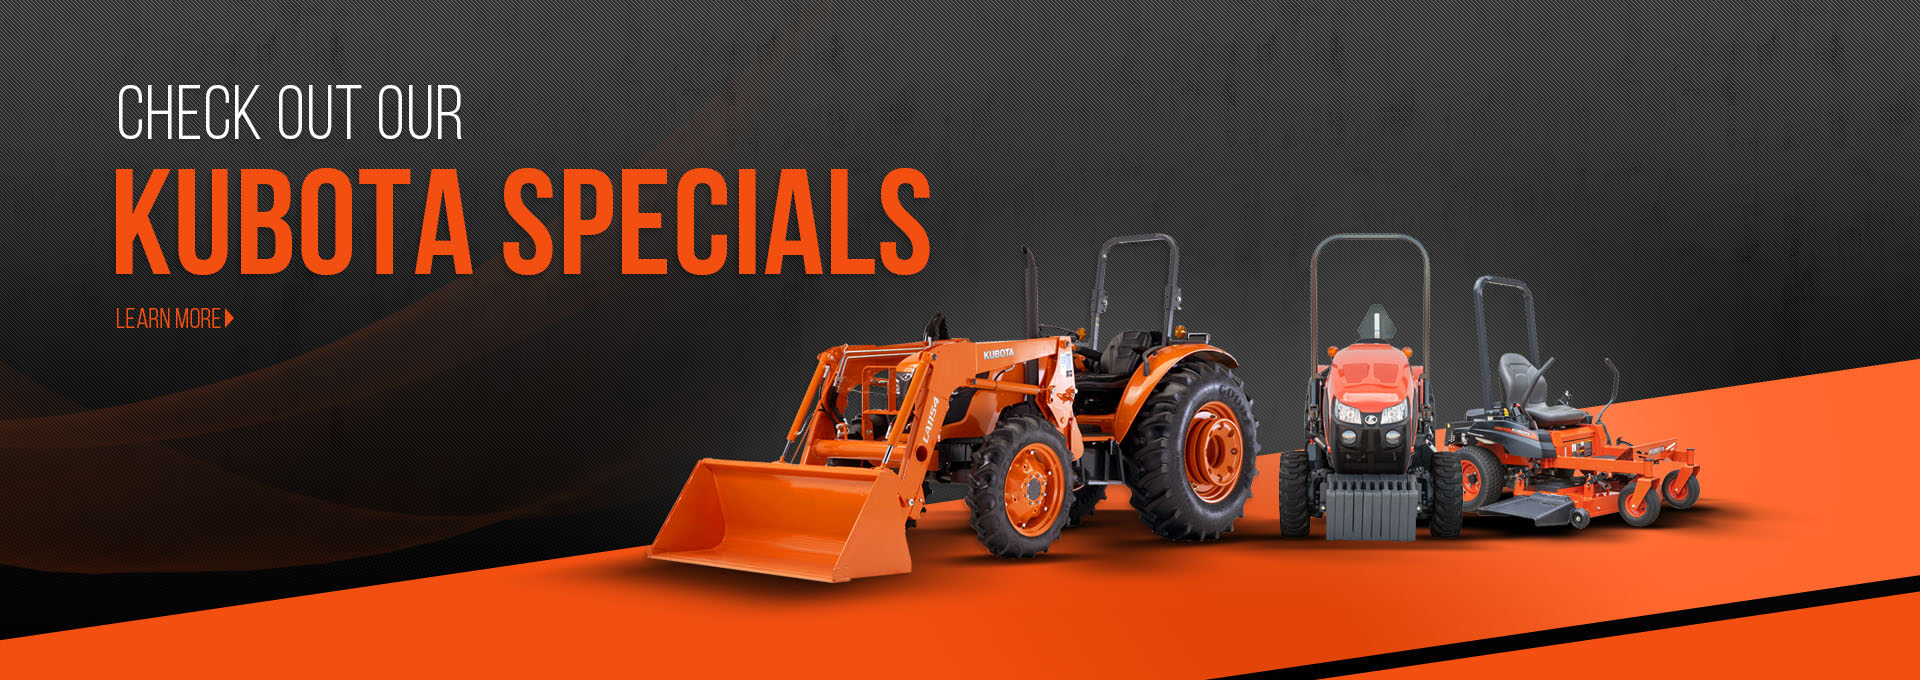 Take a look at all the amazing Kubota Specials we have to offer, only at Ginop Sales Inc. in Michigan